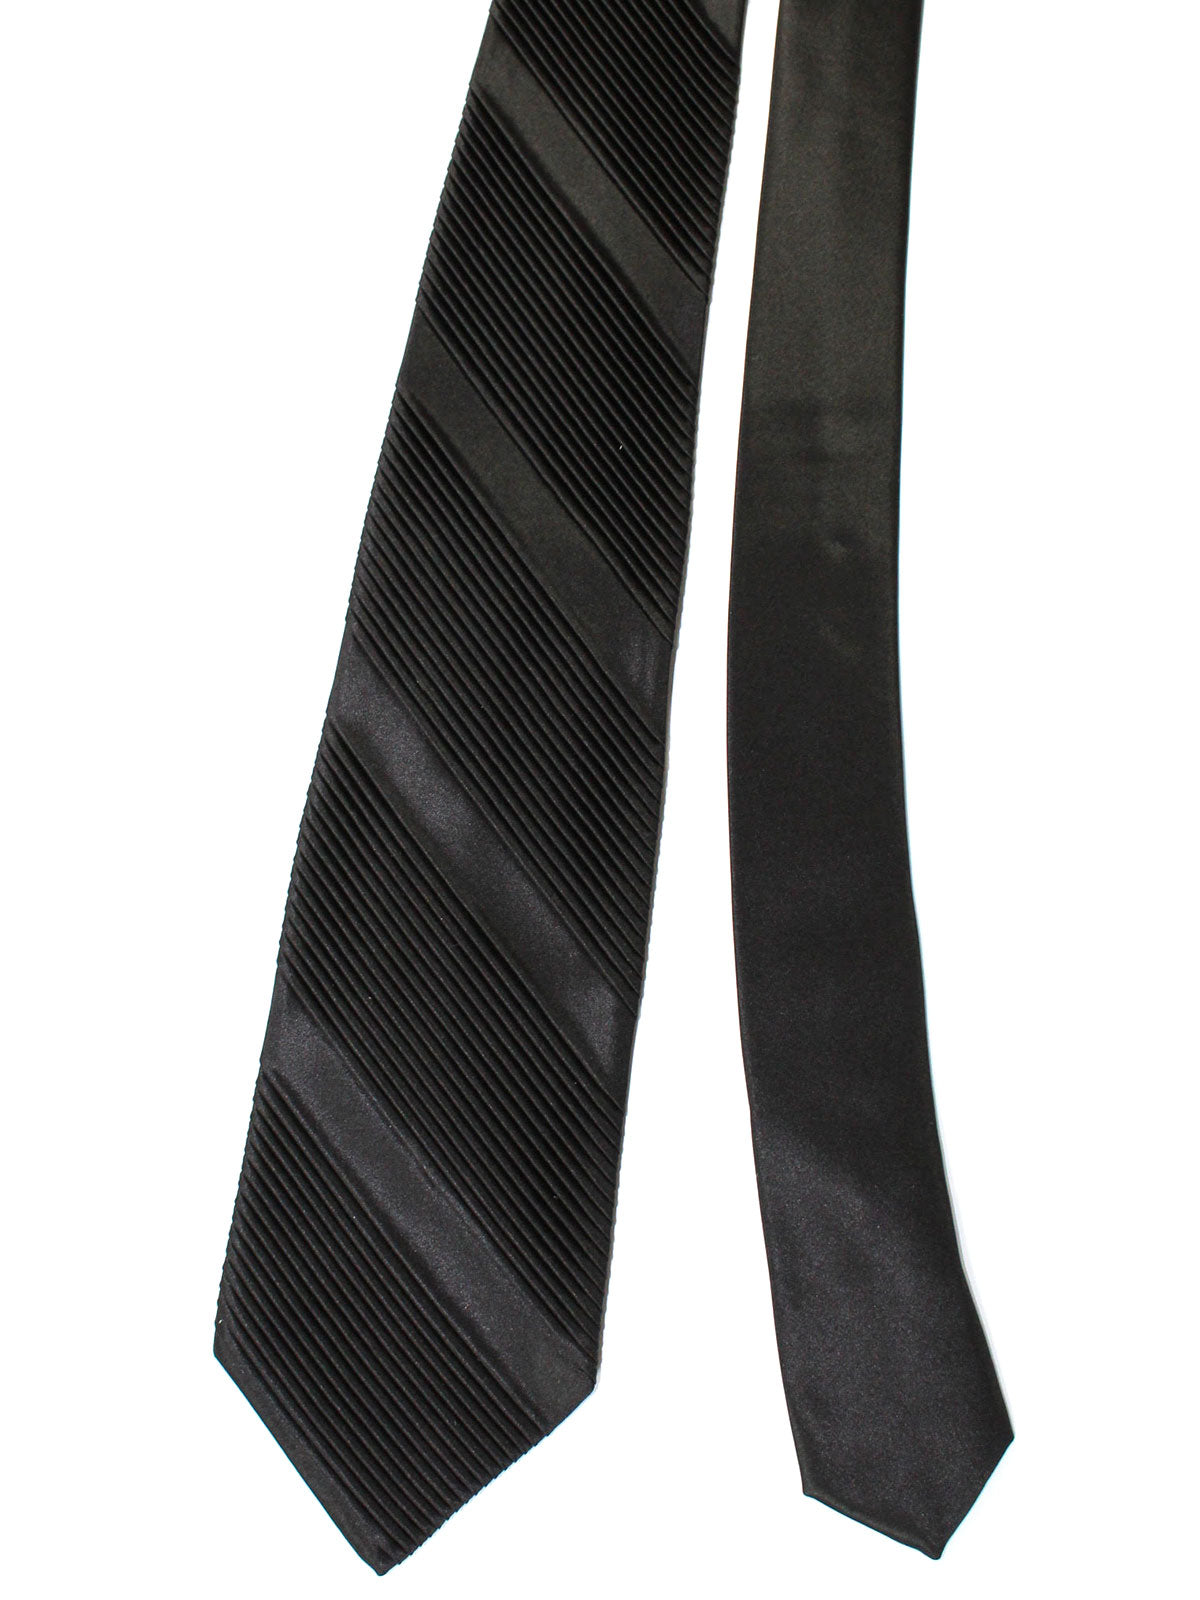 Stefano Ricci Pleated Silk Tie Black Solid Design